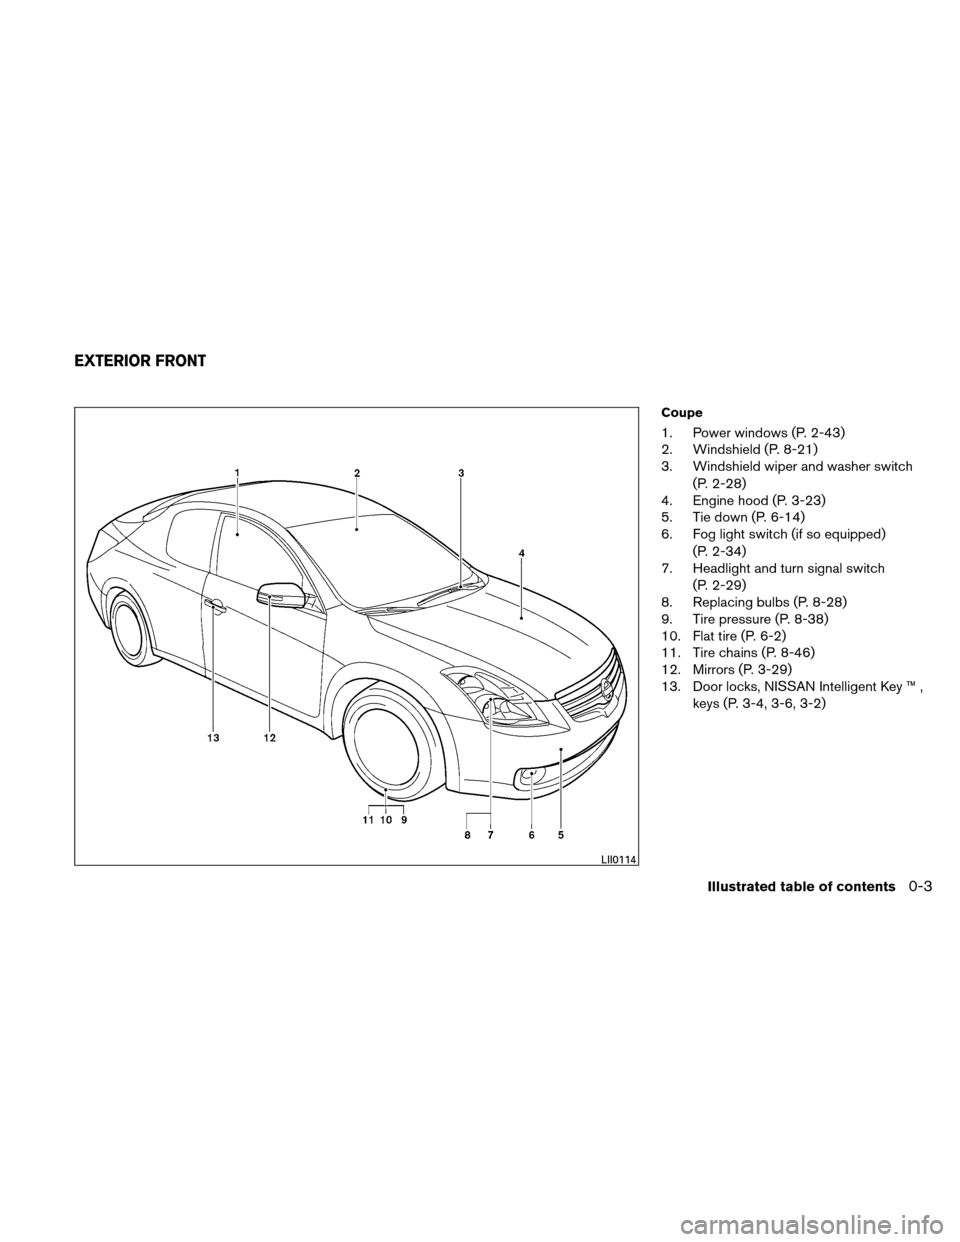 NISSAN ALTIMA COUPE 2011 D32 / 4.G Owners Manual, Page 10